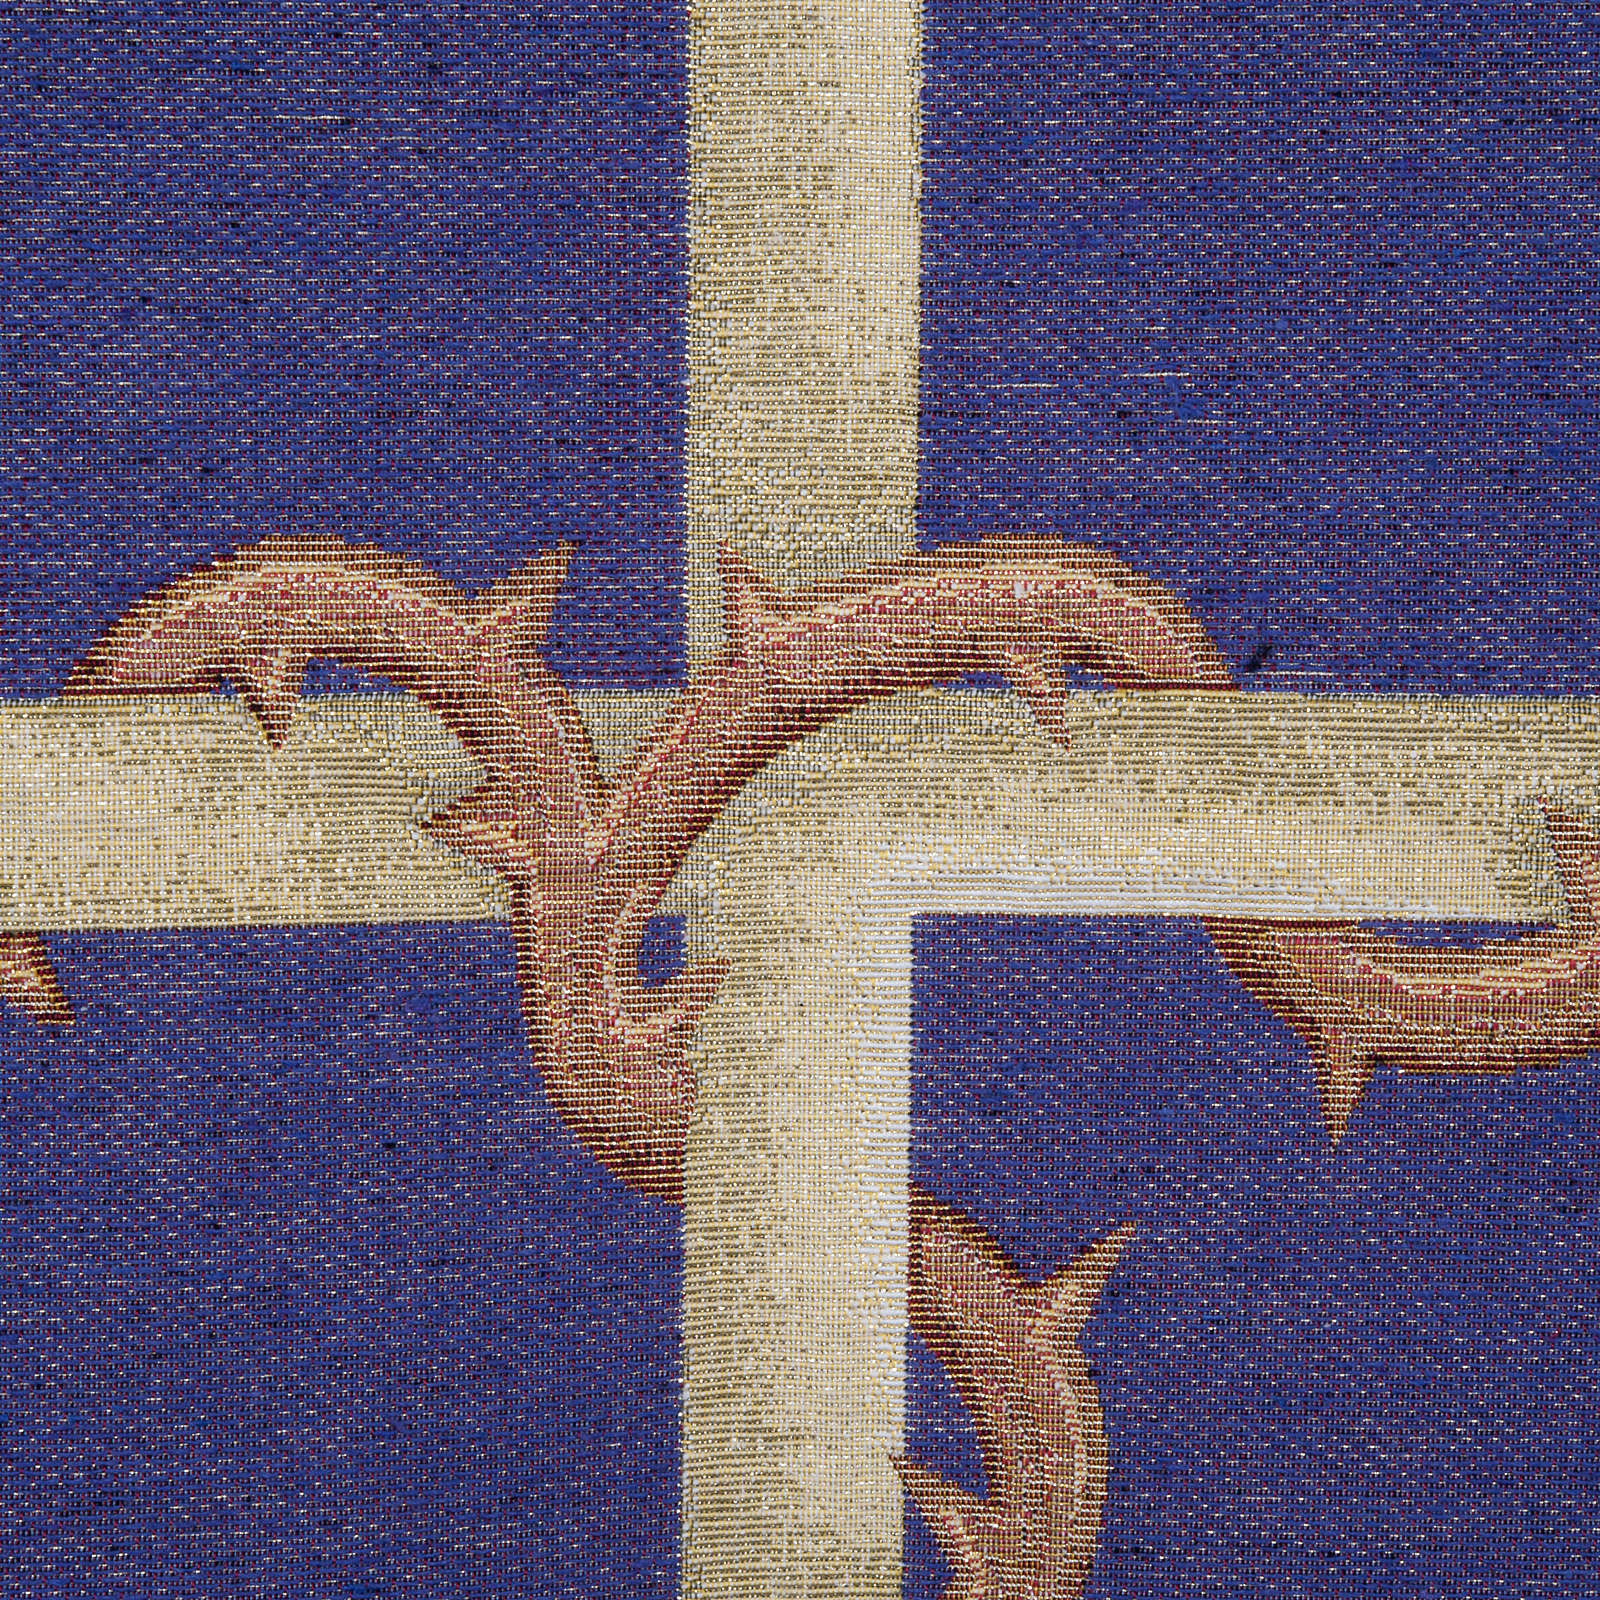 Pulpit cover, golden cross on purple background 4